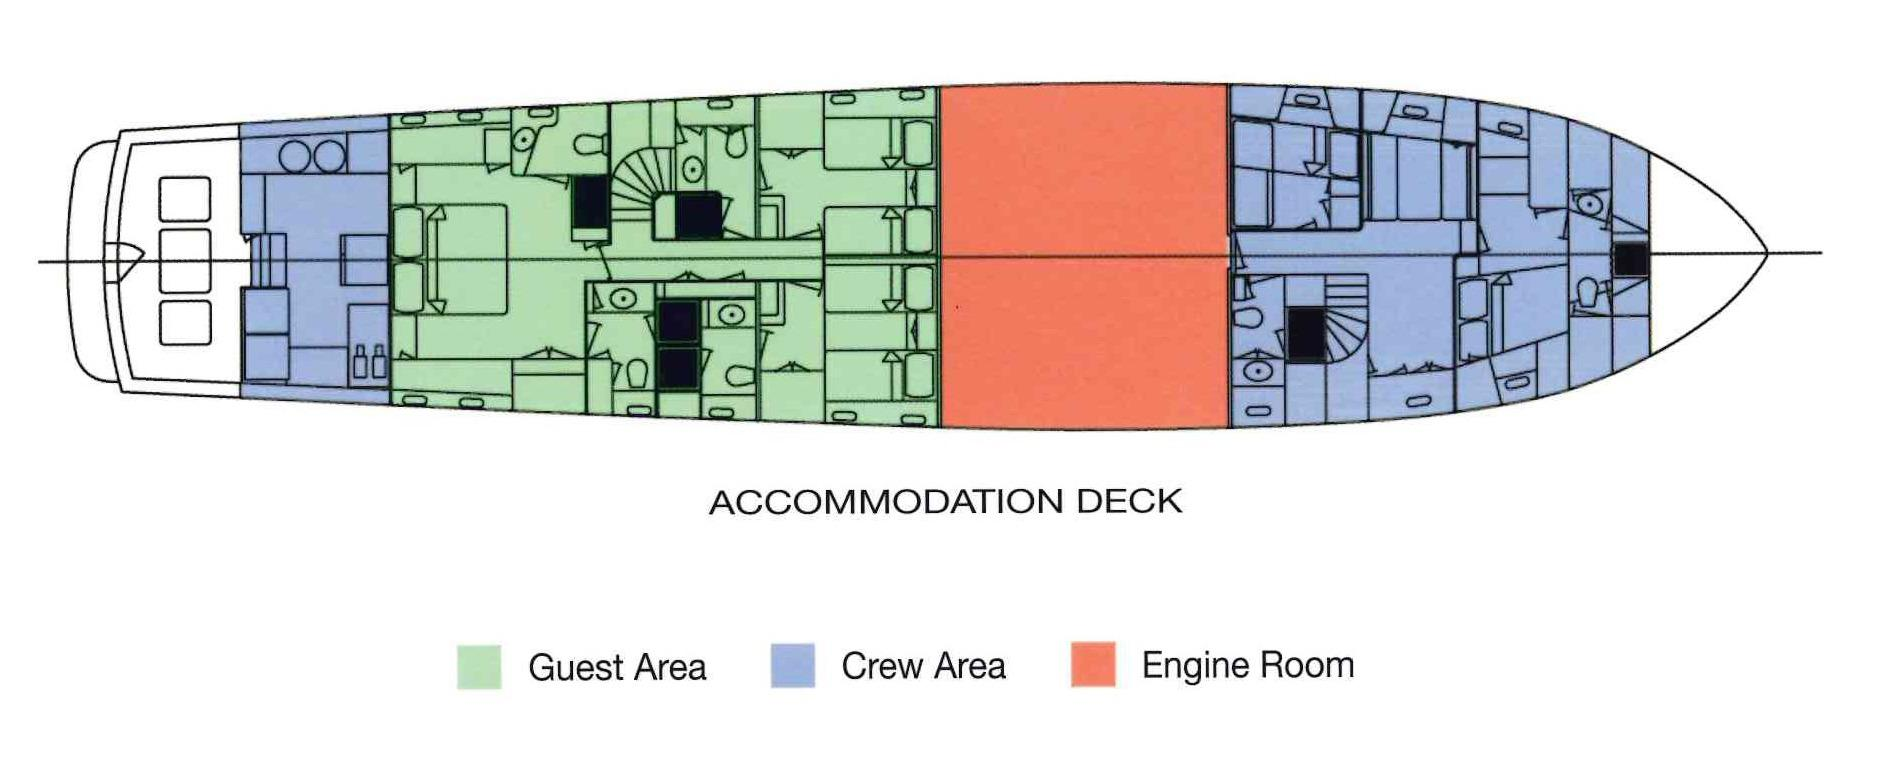 Banyan Palmer Johnson 102 Yachts For Sale Oil Injector Wiring Diagram Accommodation Deck Drawing